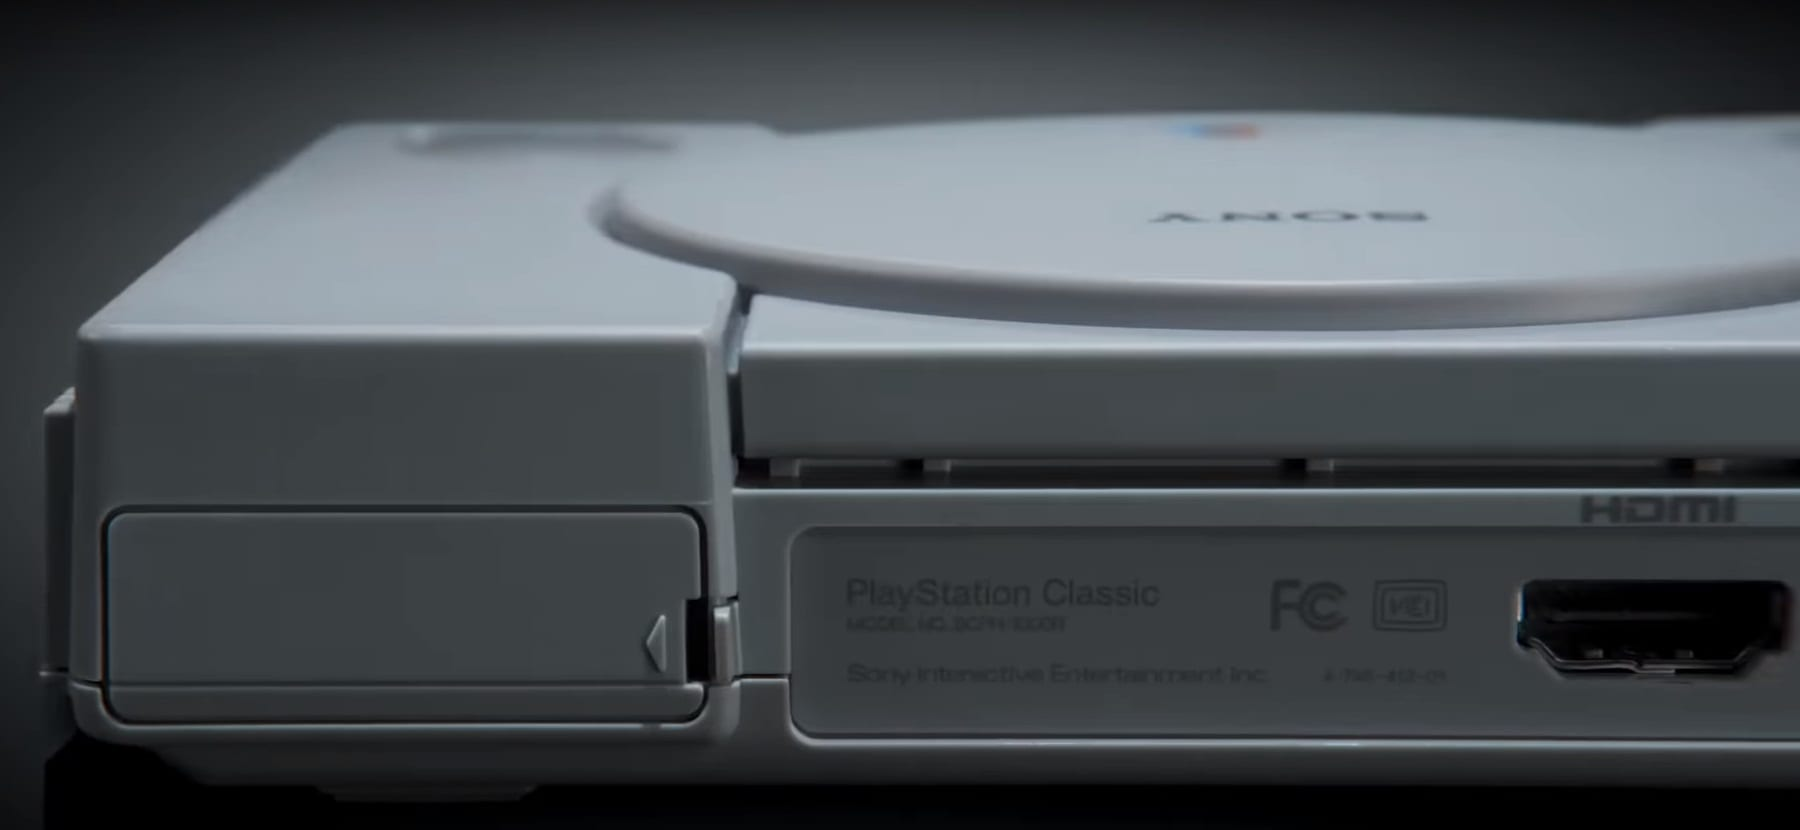 playstation classic back